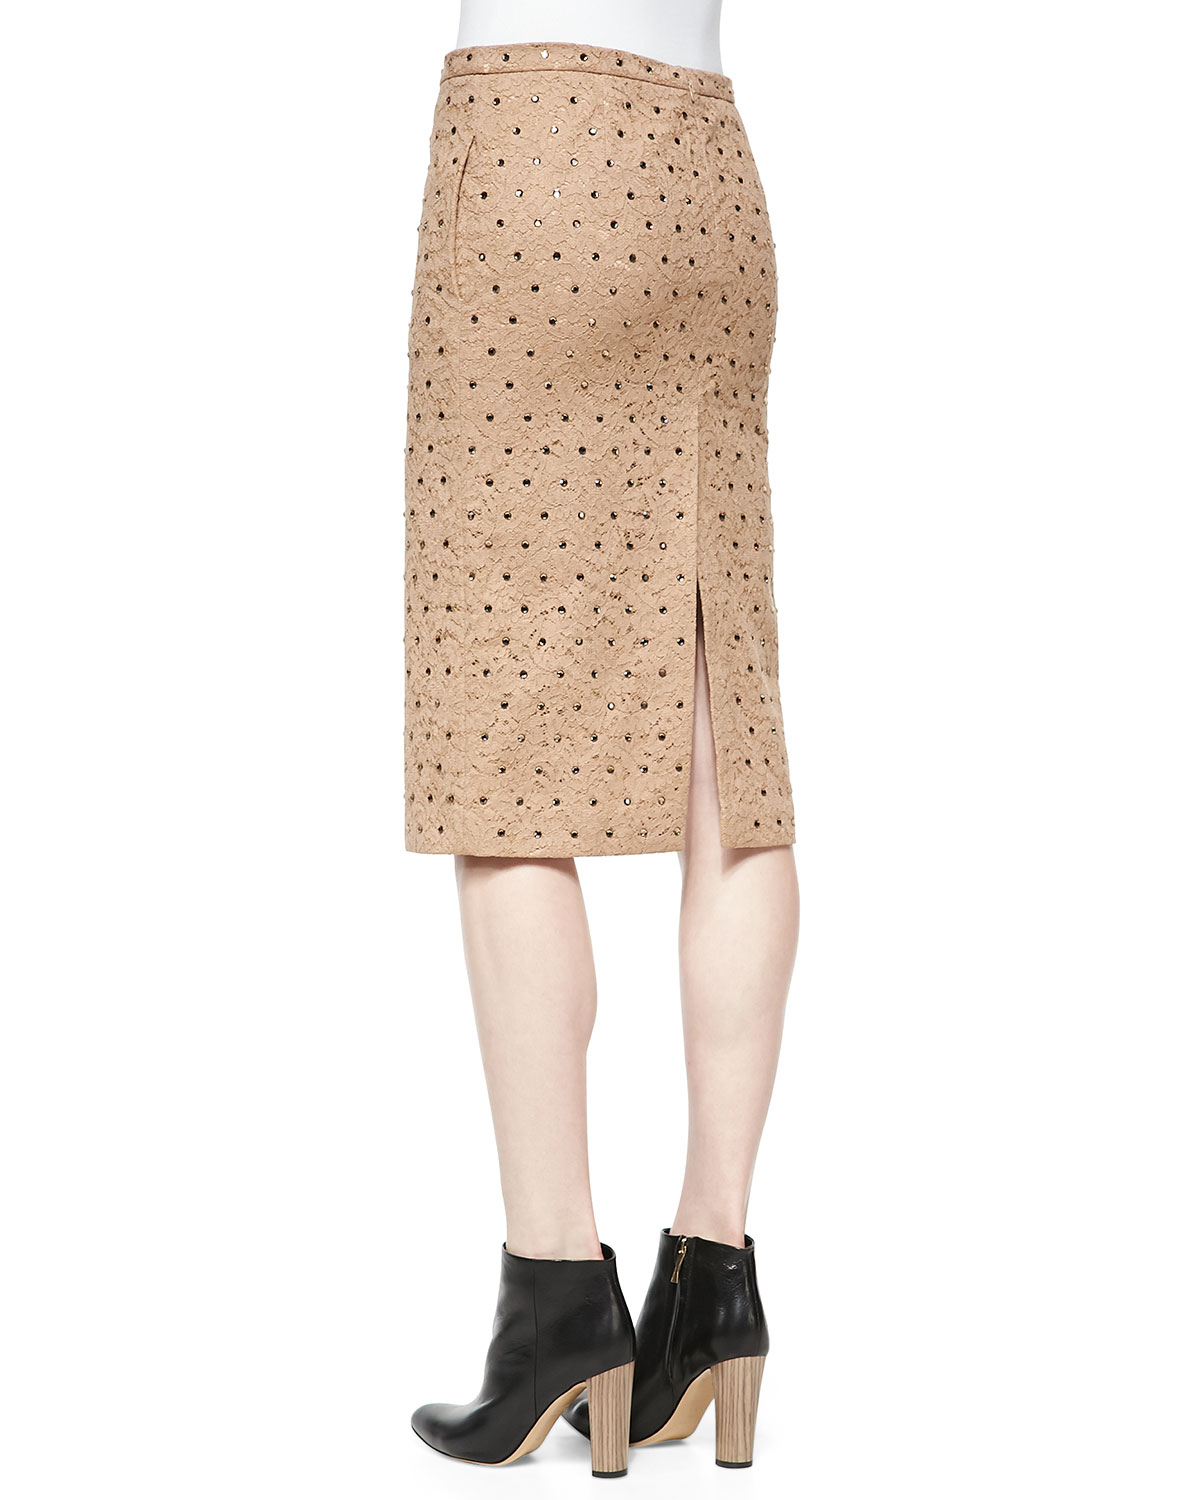 N°21 Crystal-Studded Lace Pencil Skirt in Natural | Lyst